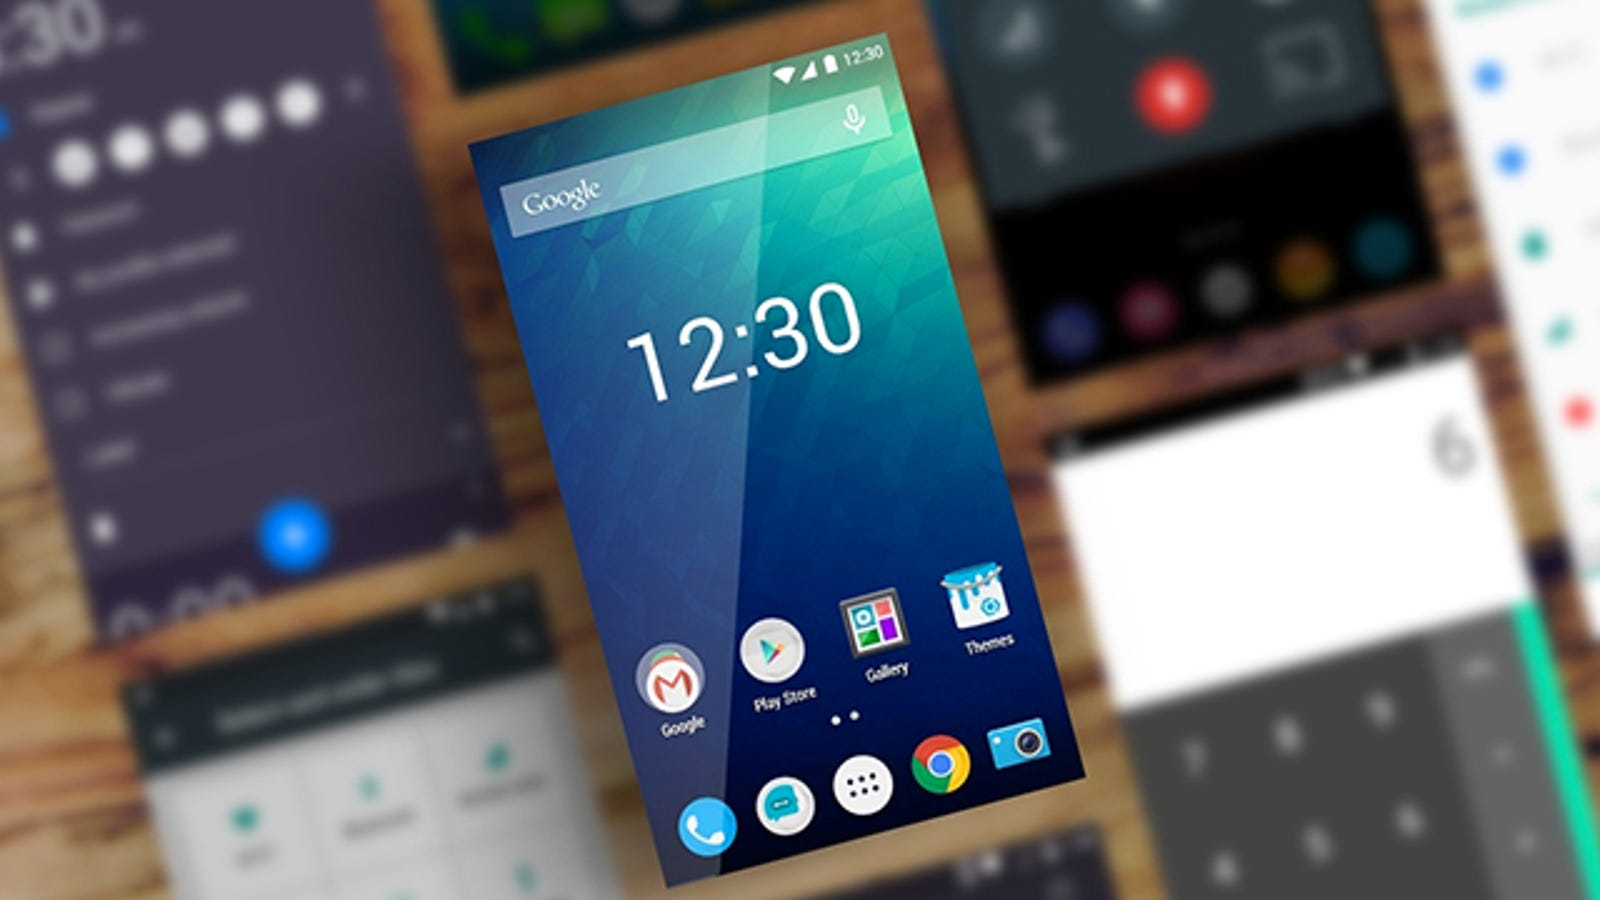 How to Put CyanogenMod on Your Android Phone